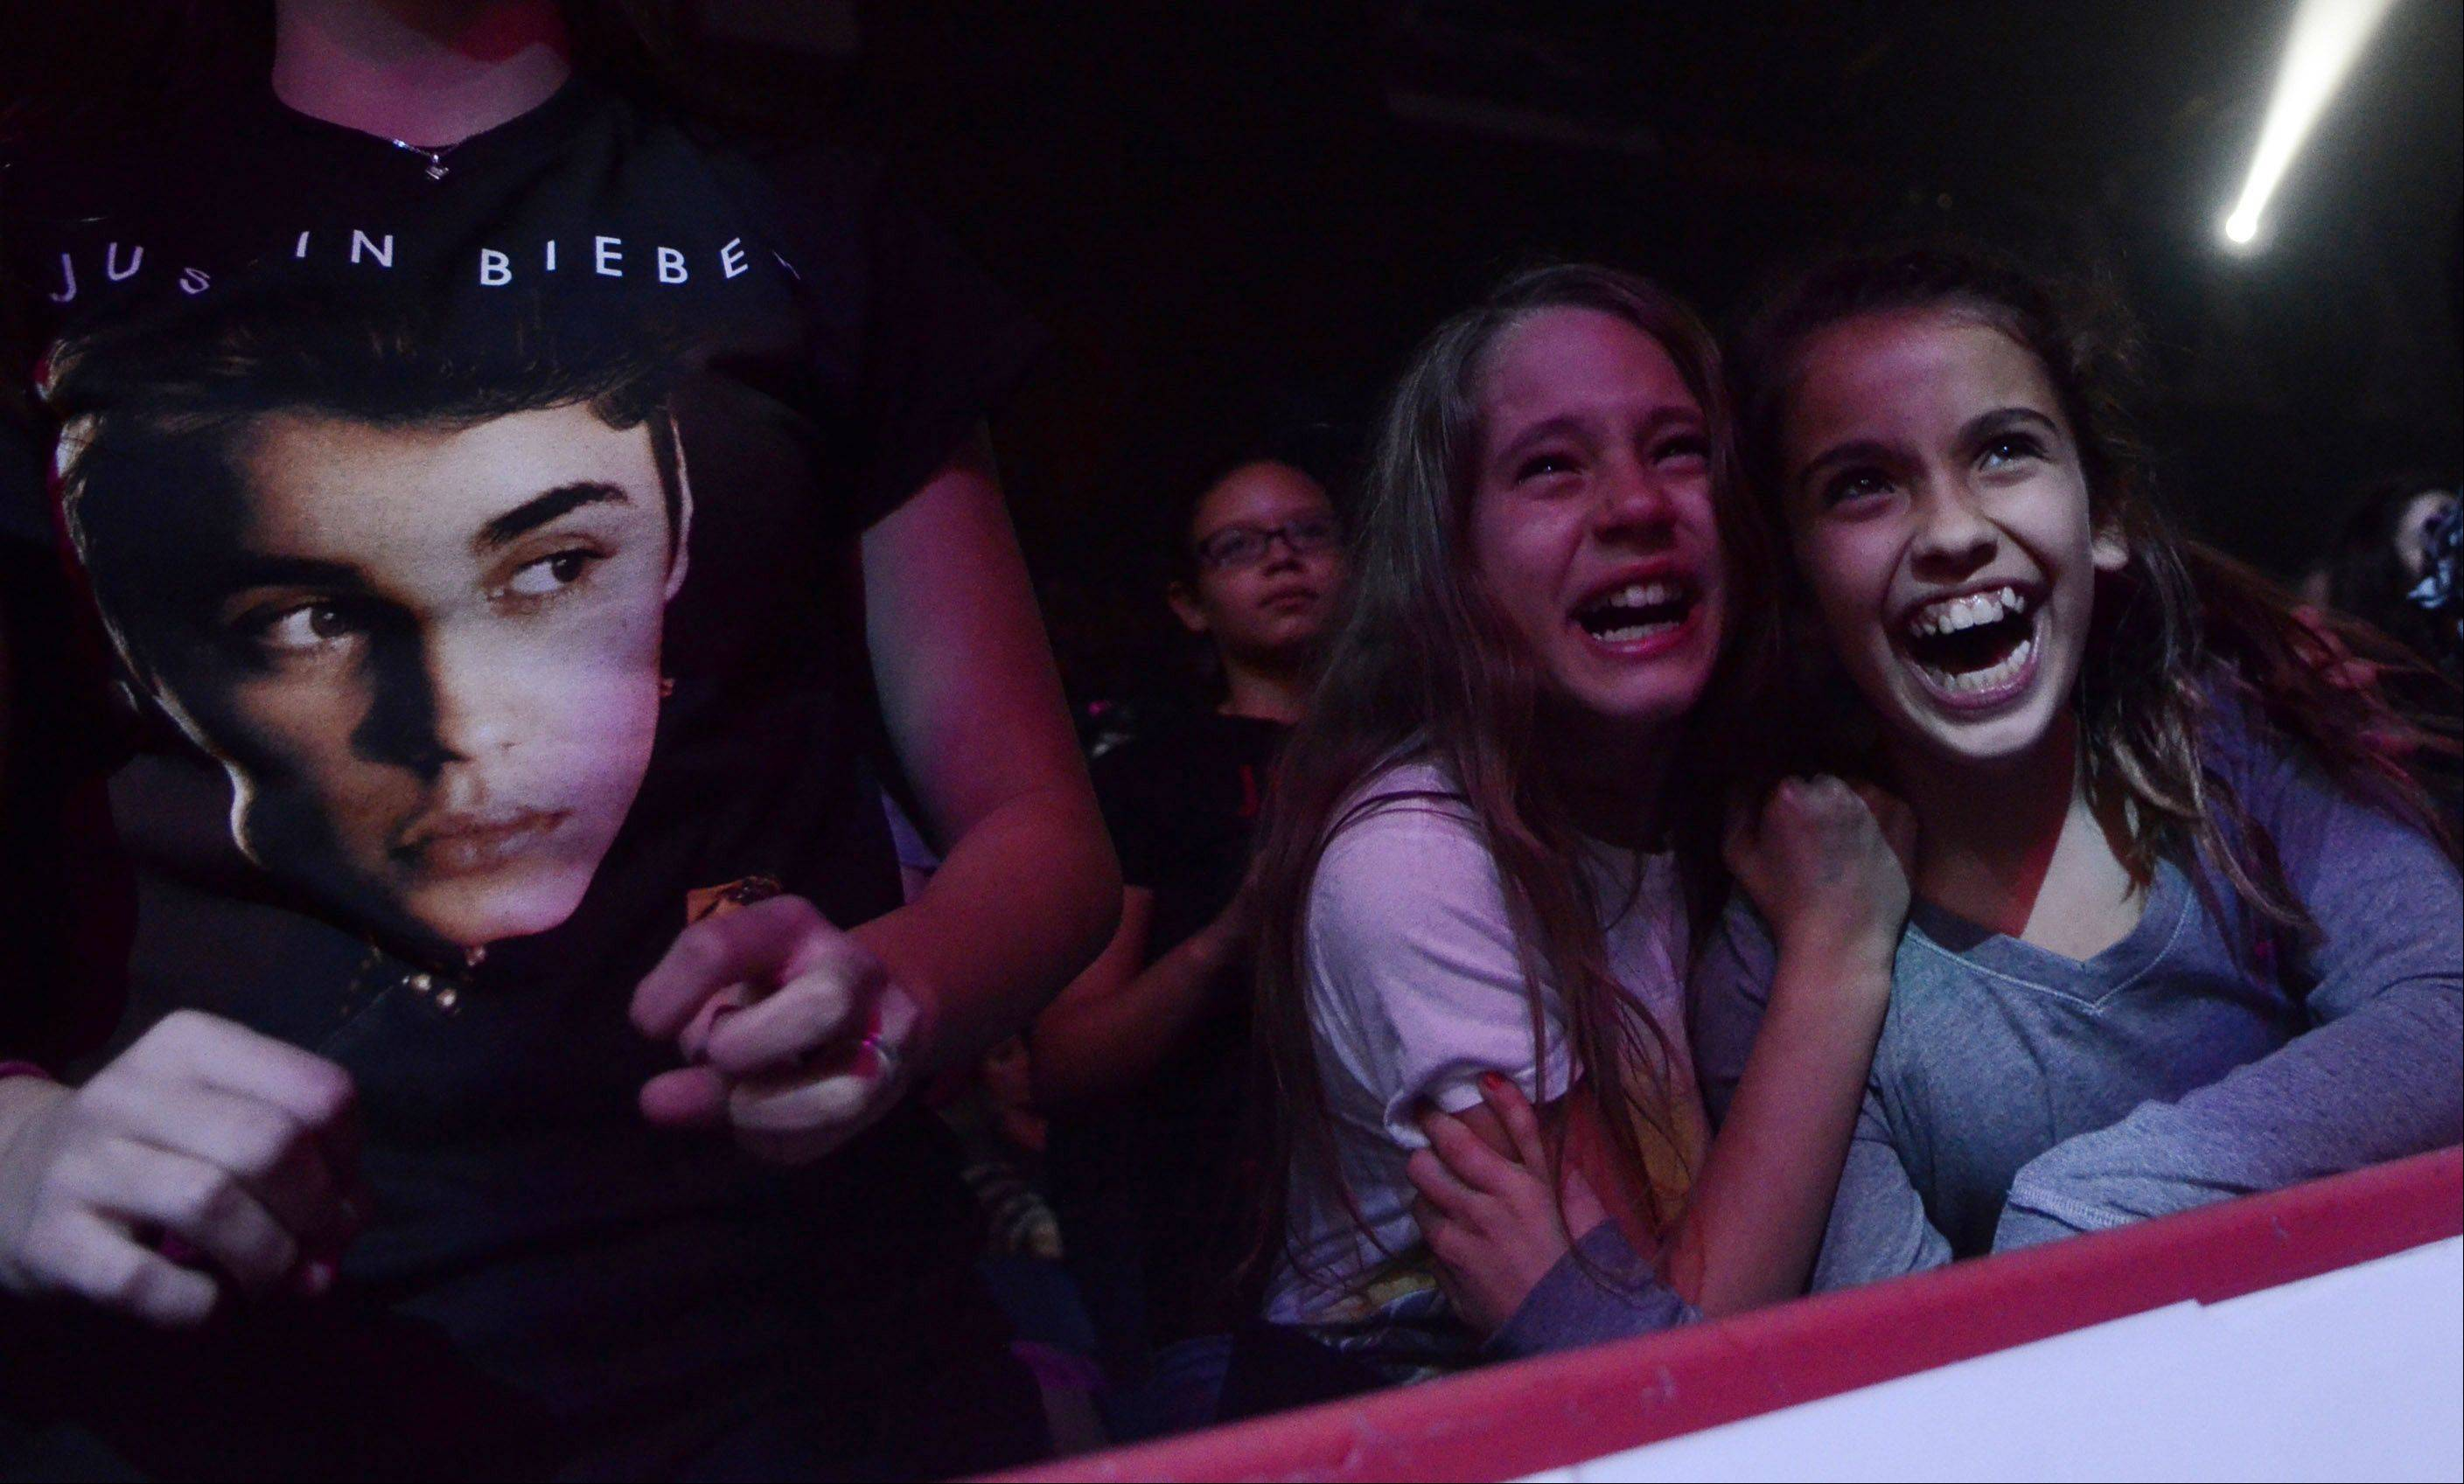 Sheridan Young, 11, left, and her friend Madison White, 10, both of Lake Bluff, cheer as they watch Justin Bieber perform during his Believe tour at the Allstate Arena in Rosemont on Tuesday, October 23, 2012.